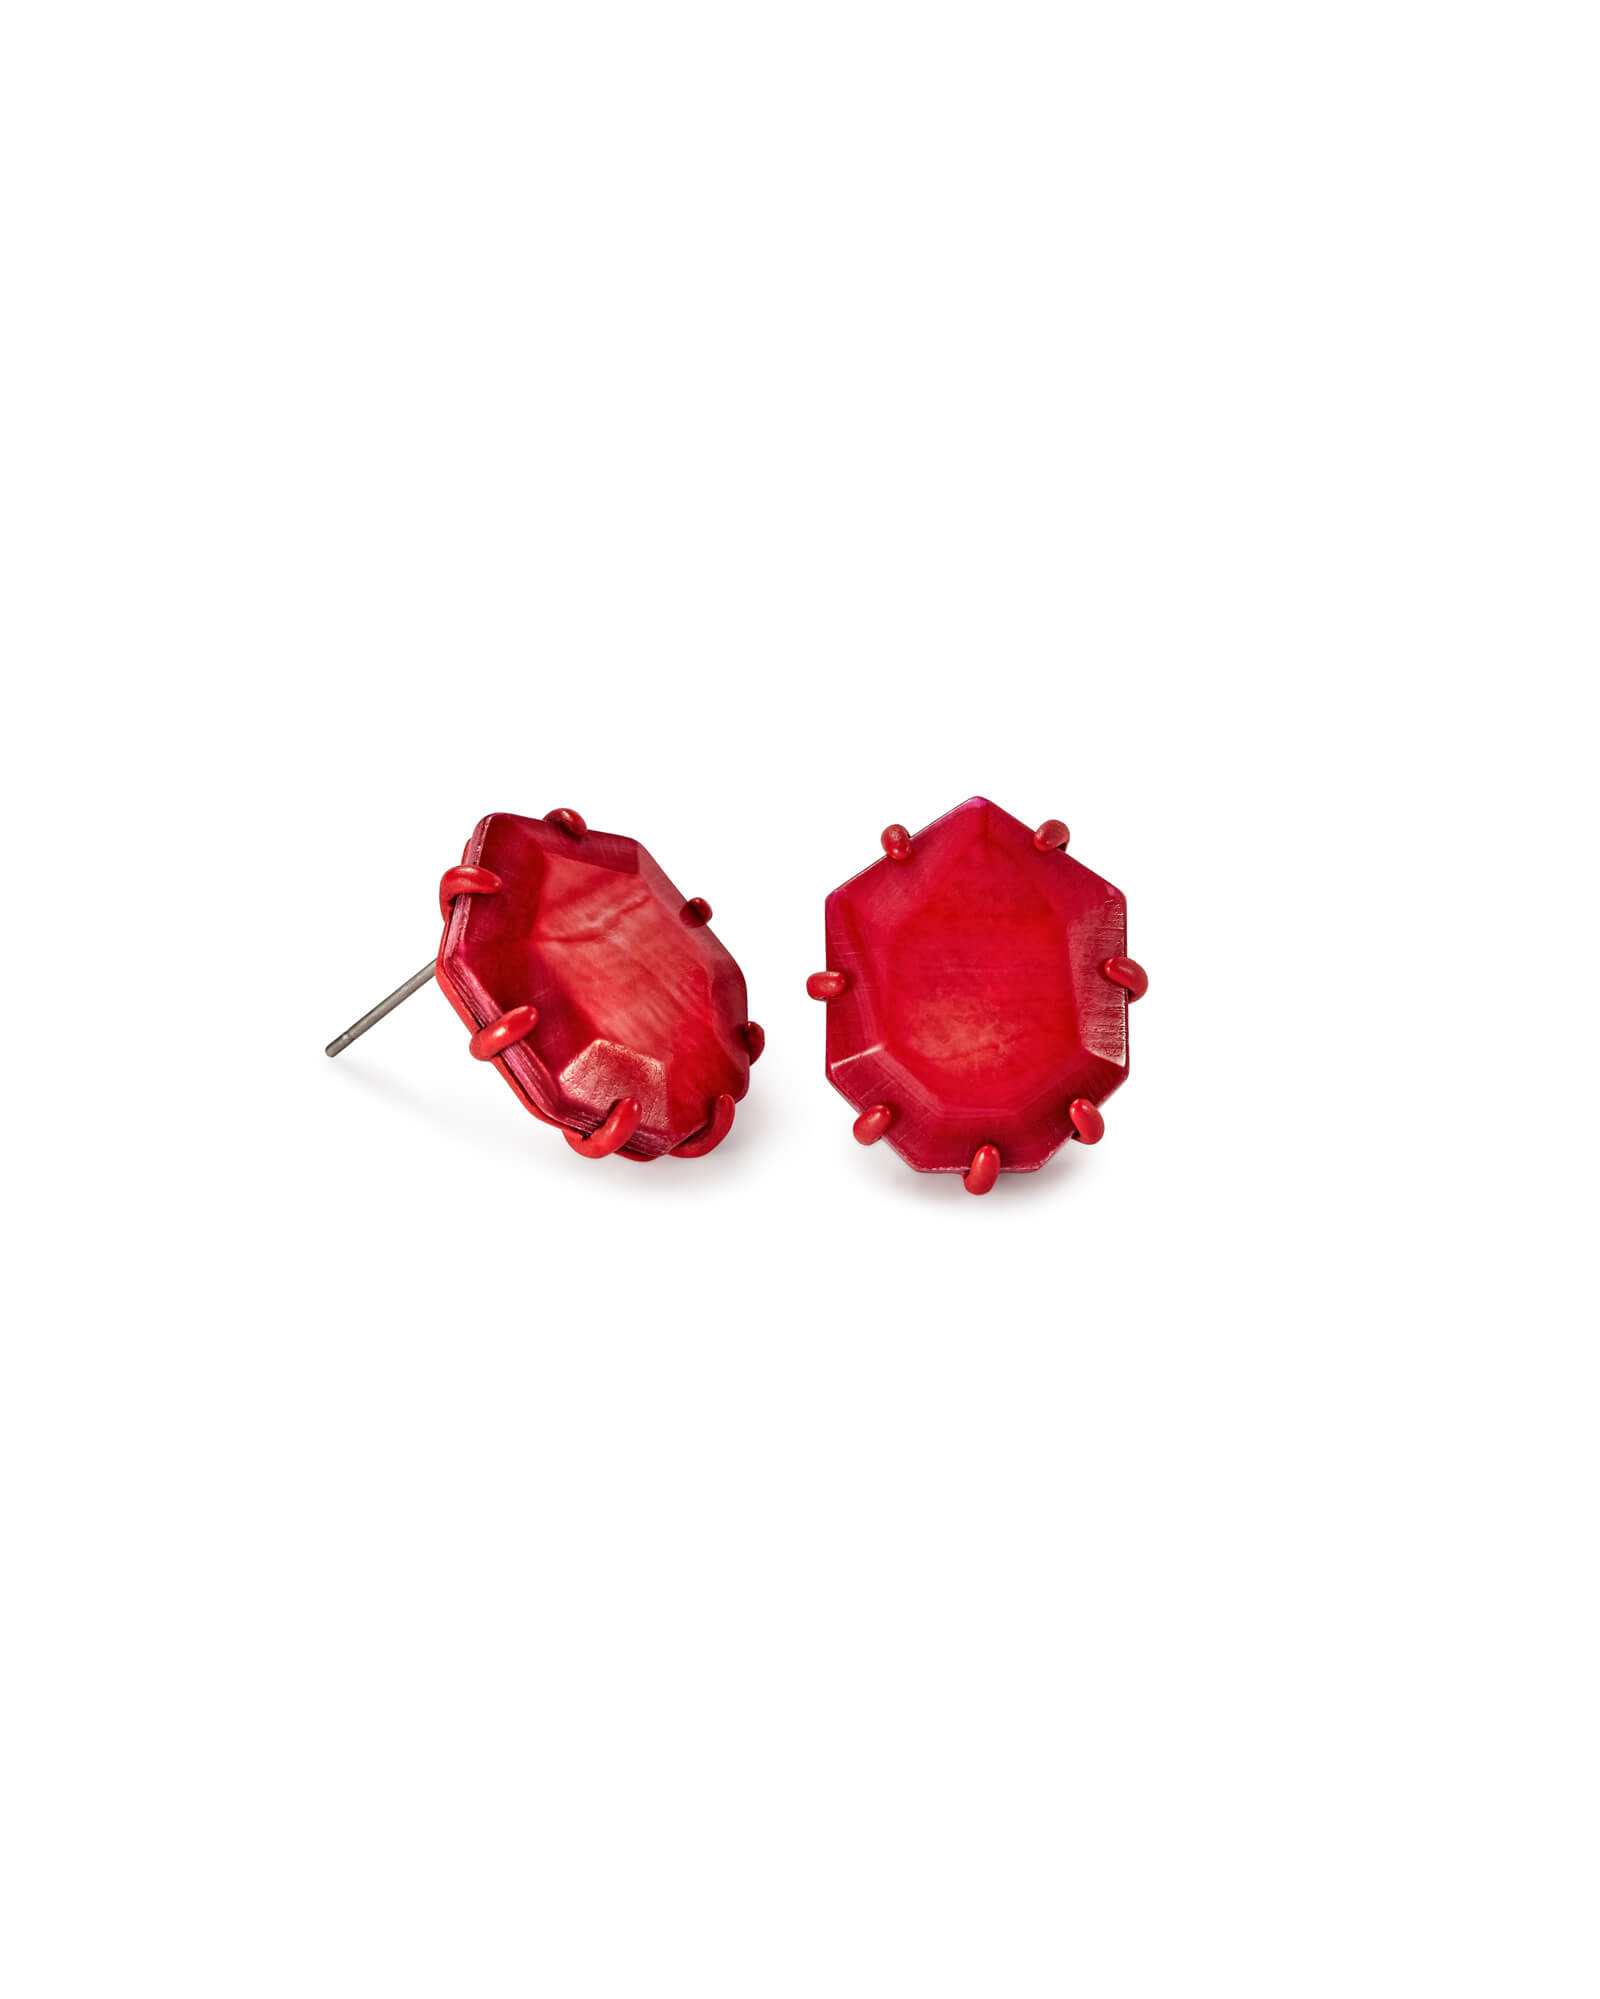 tresor paris stud earrings jewellery crystal image from heart red